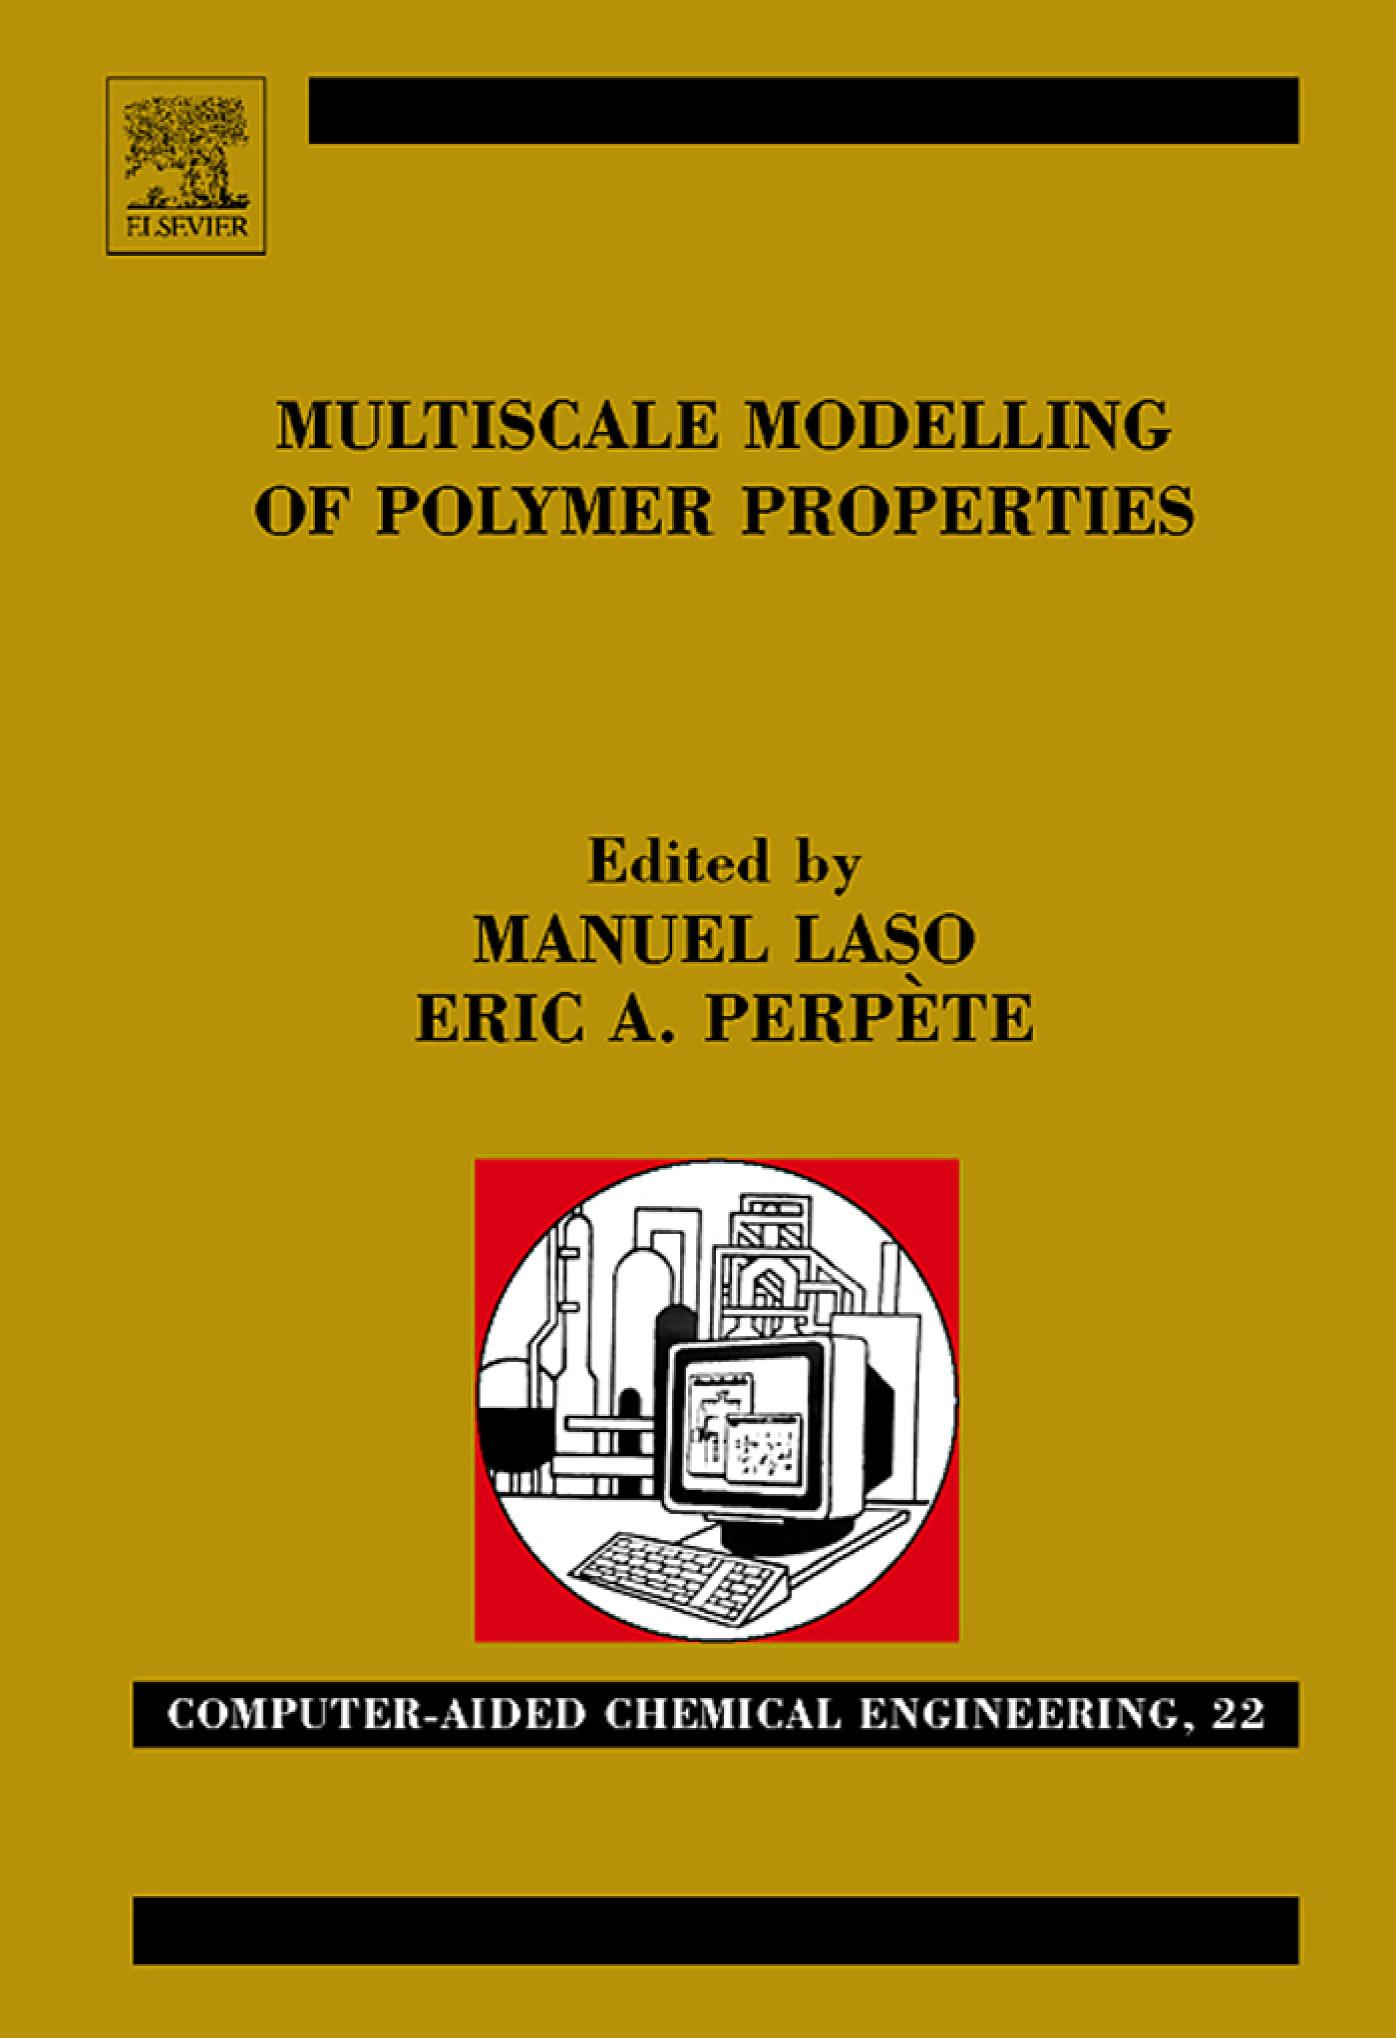 Multiscale Modelling of Polymer Properties